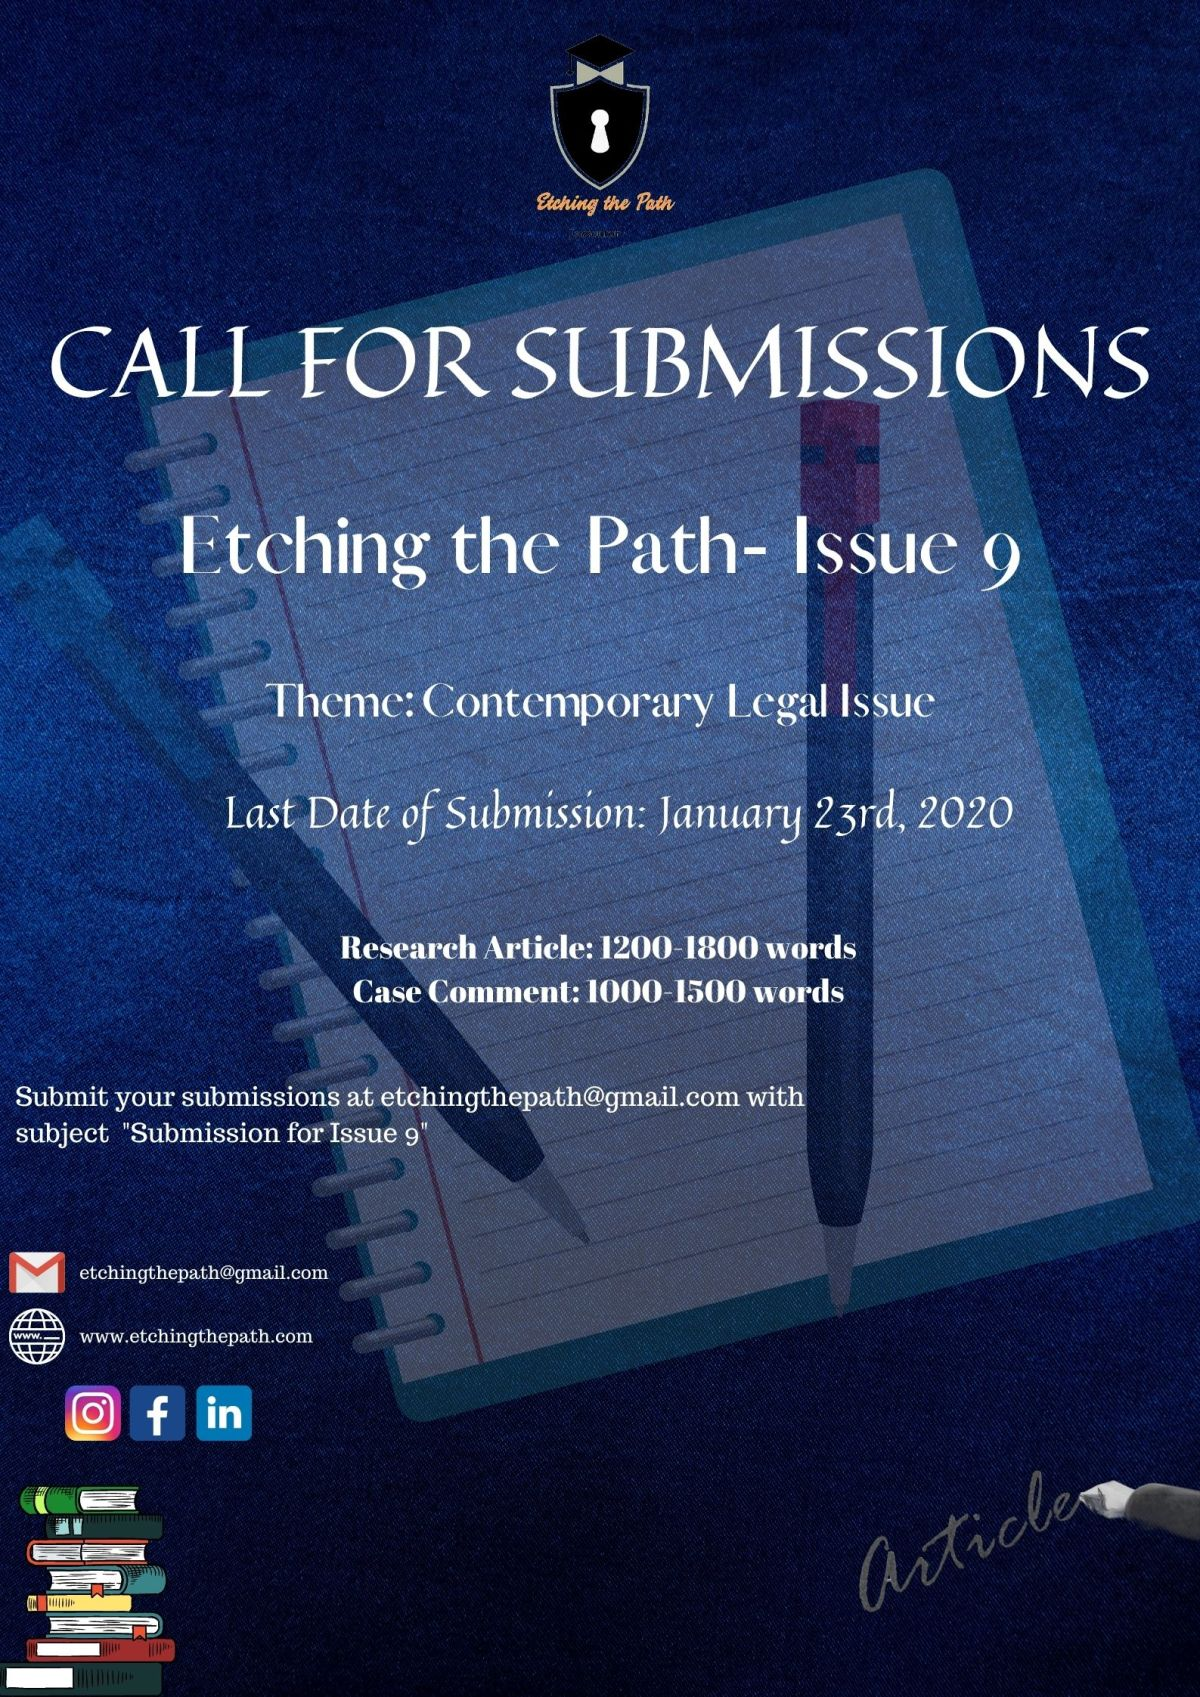 Call for Submissions by Etching the Path: Issue9 [Submit by: January 23rd, 2021]